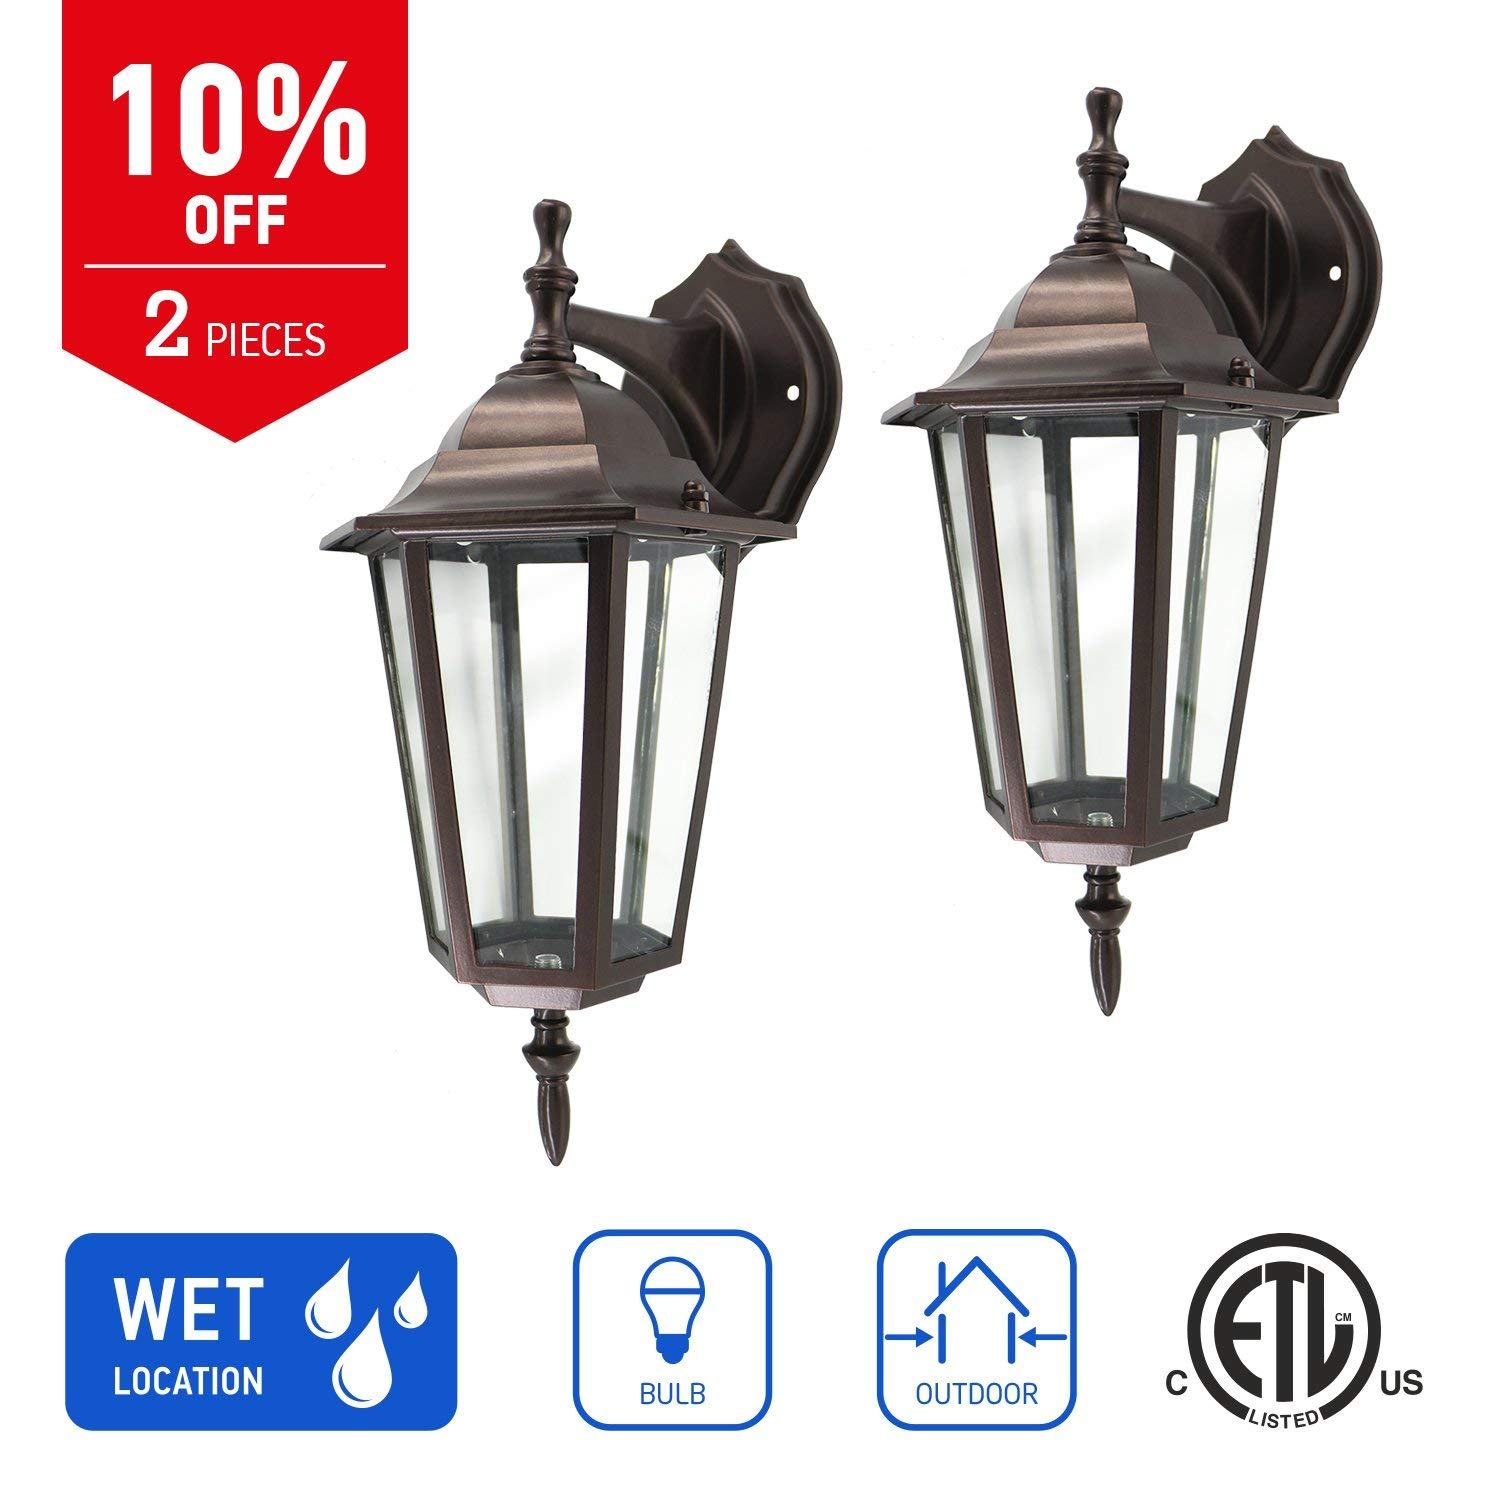 IN HOME 1-Light Outdoor Exterior Wall Down Lantern, Traditional Porch Patio Lighting Fixture L01 with One E26 Base, Water-Proof, Bronze Cast Aluminum Housing, Clear Glass Panels, (2 Pack) ETL Listed